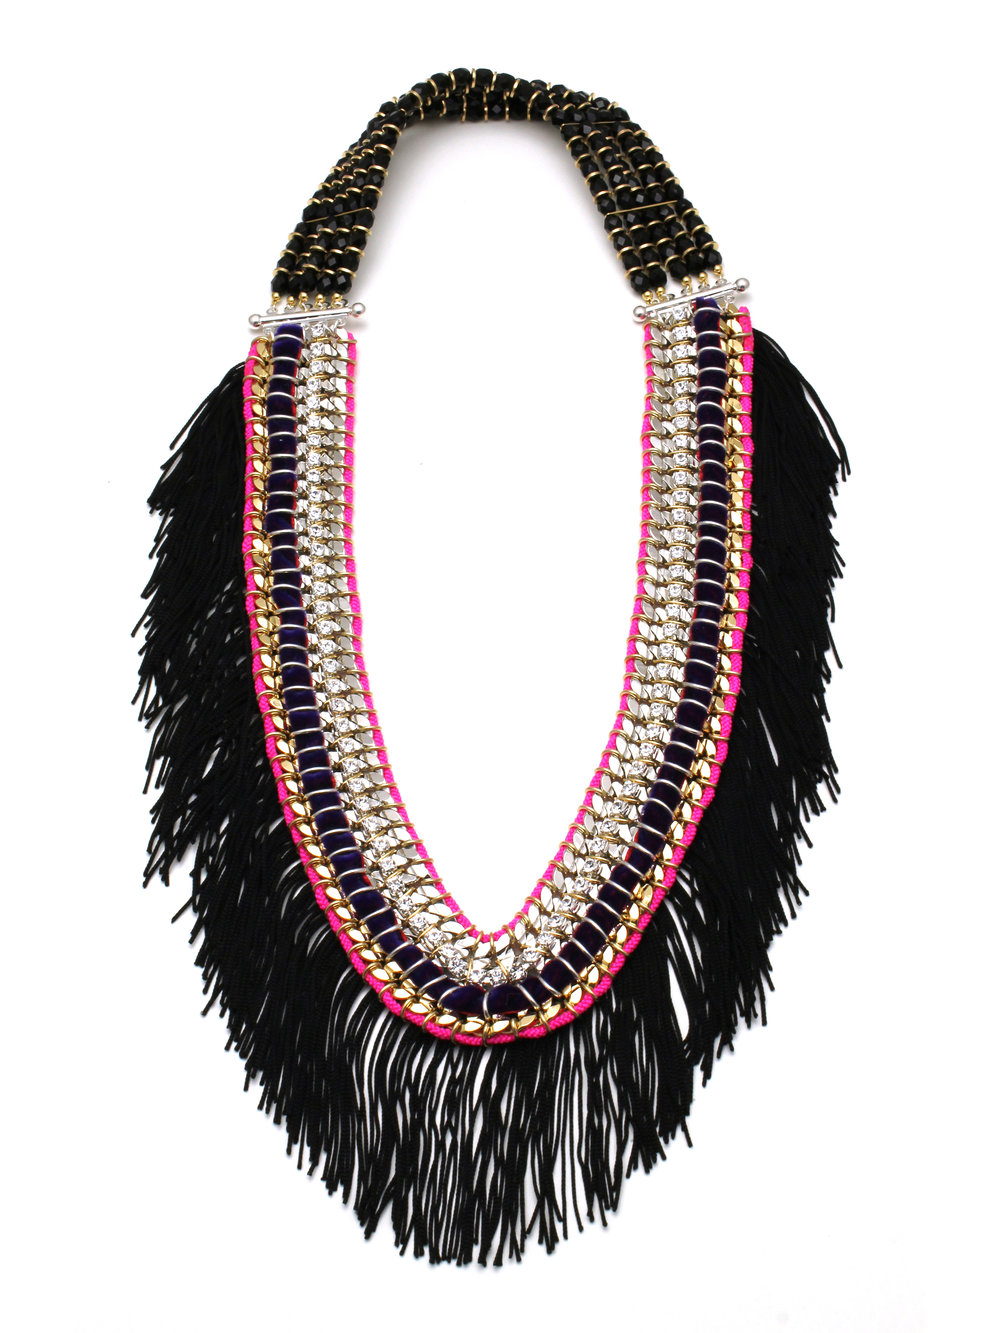 046 - Black Fringe Ribbon Necklace.jpg